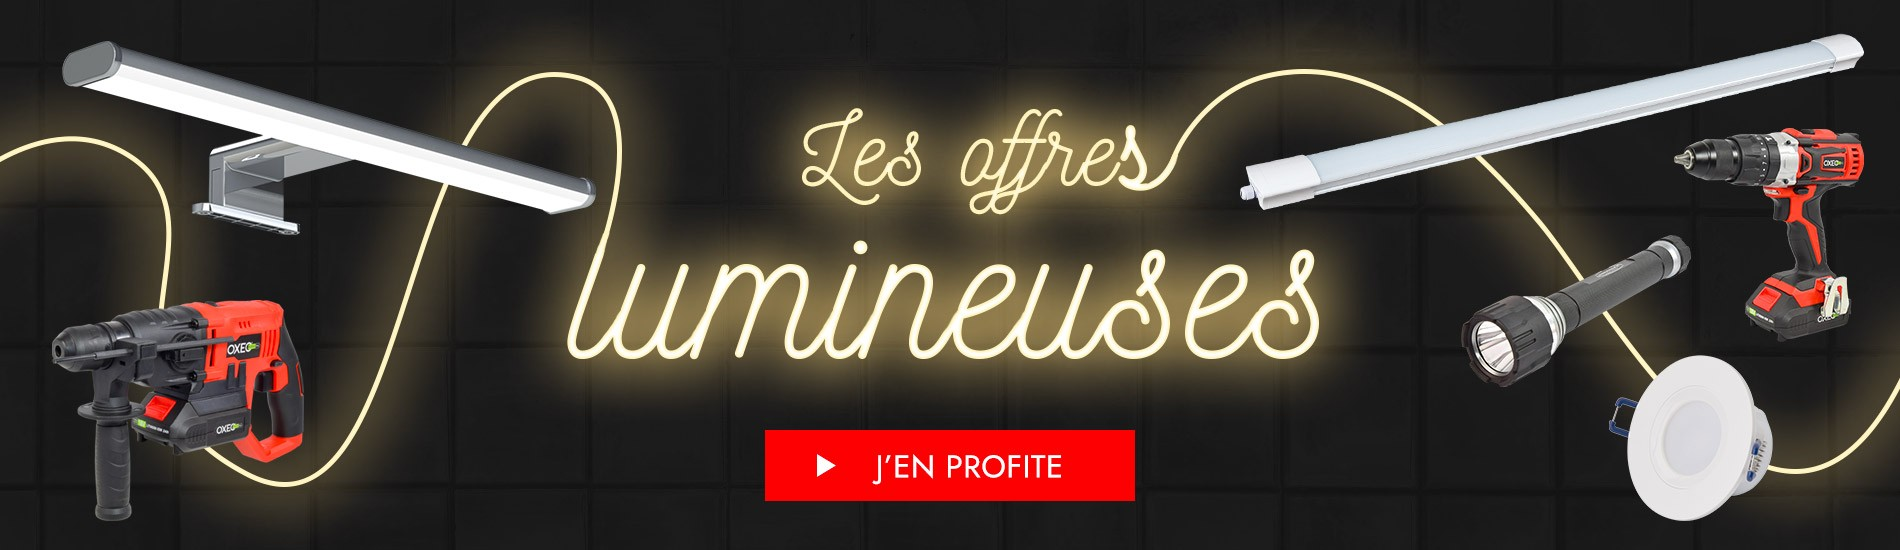 Les offres lumineuses